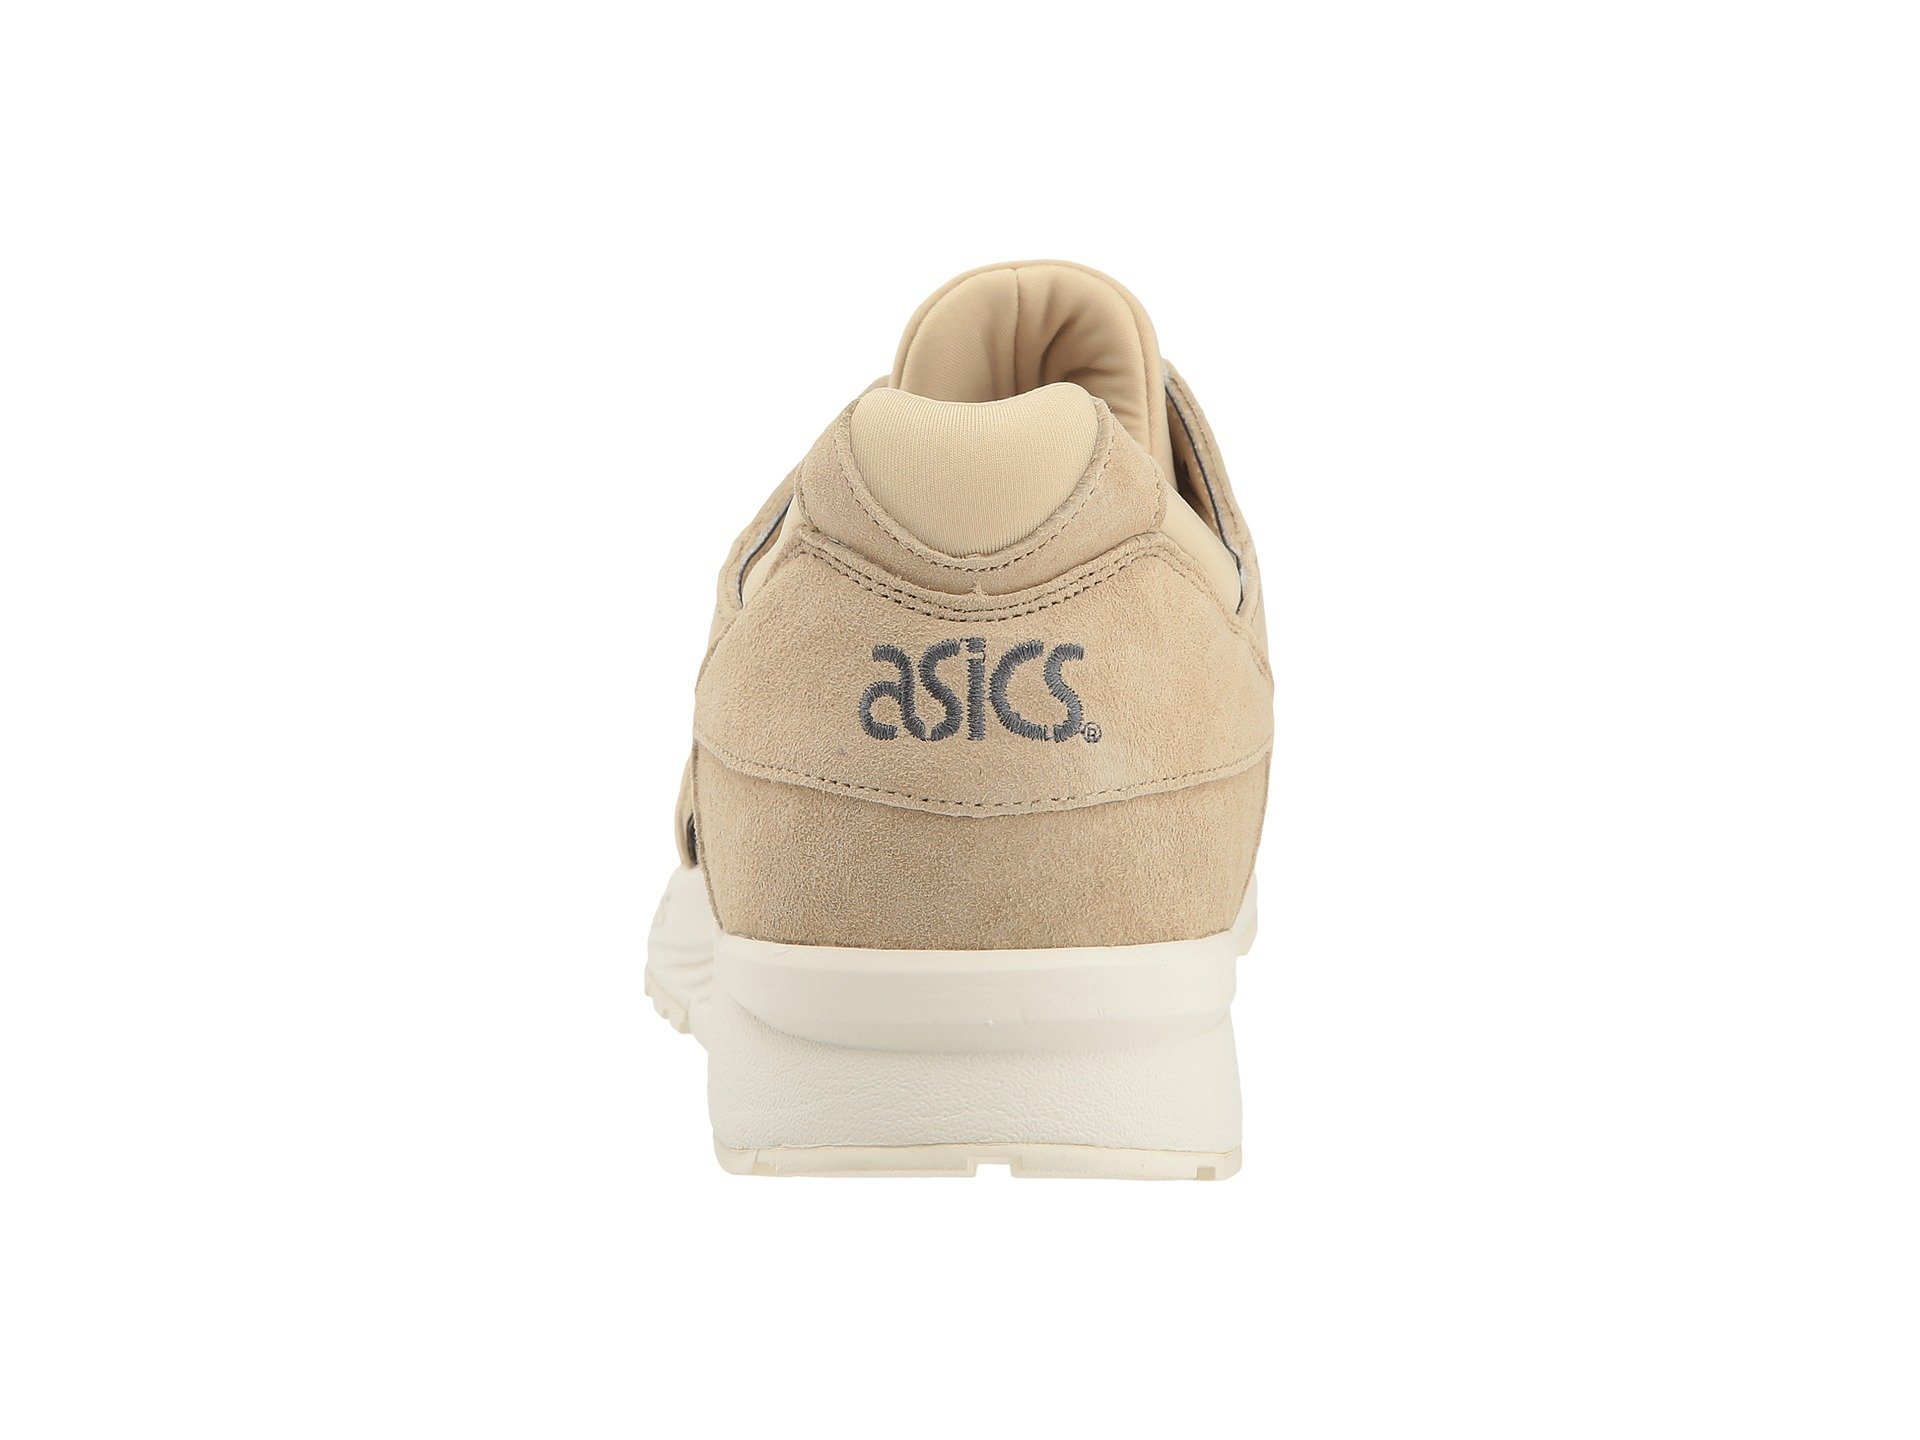 brand new 00405 4fc54 Кроссовки Onitsuka Tiger by Asics Gel-Lyte™ V Taos Taupe/Taos Taupe, 46.5  (295 мм) (10083721)